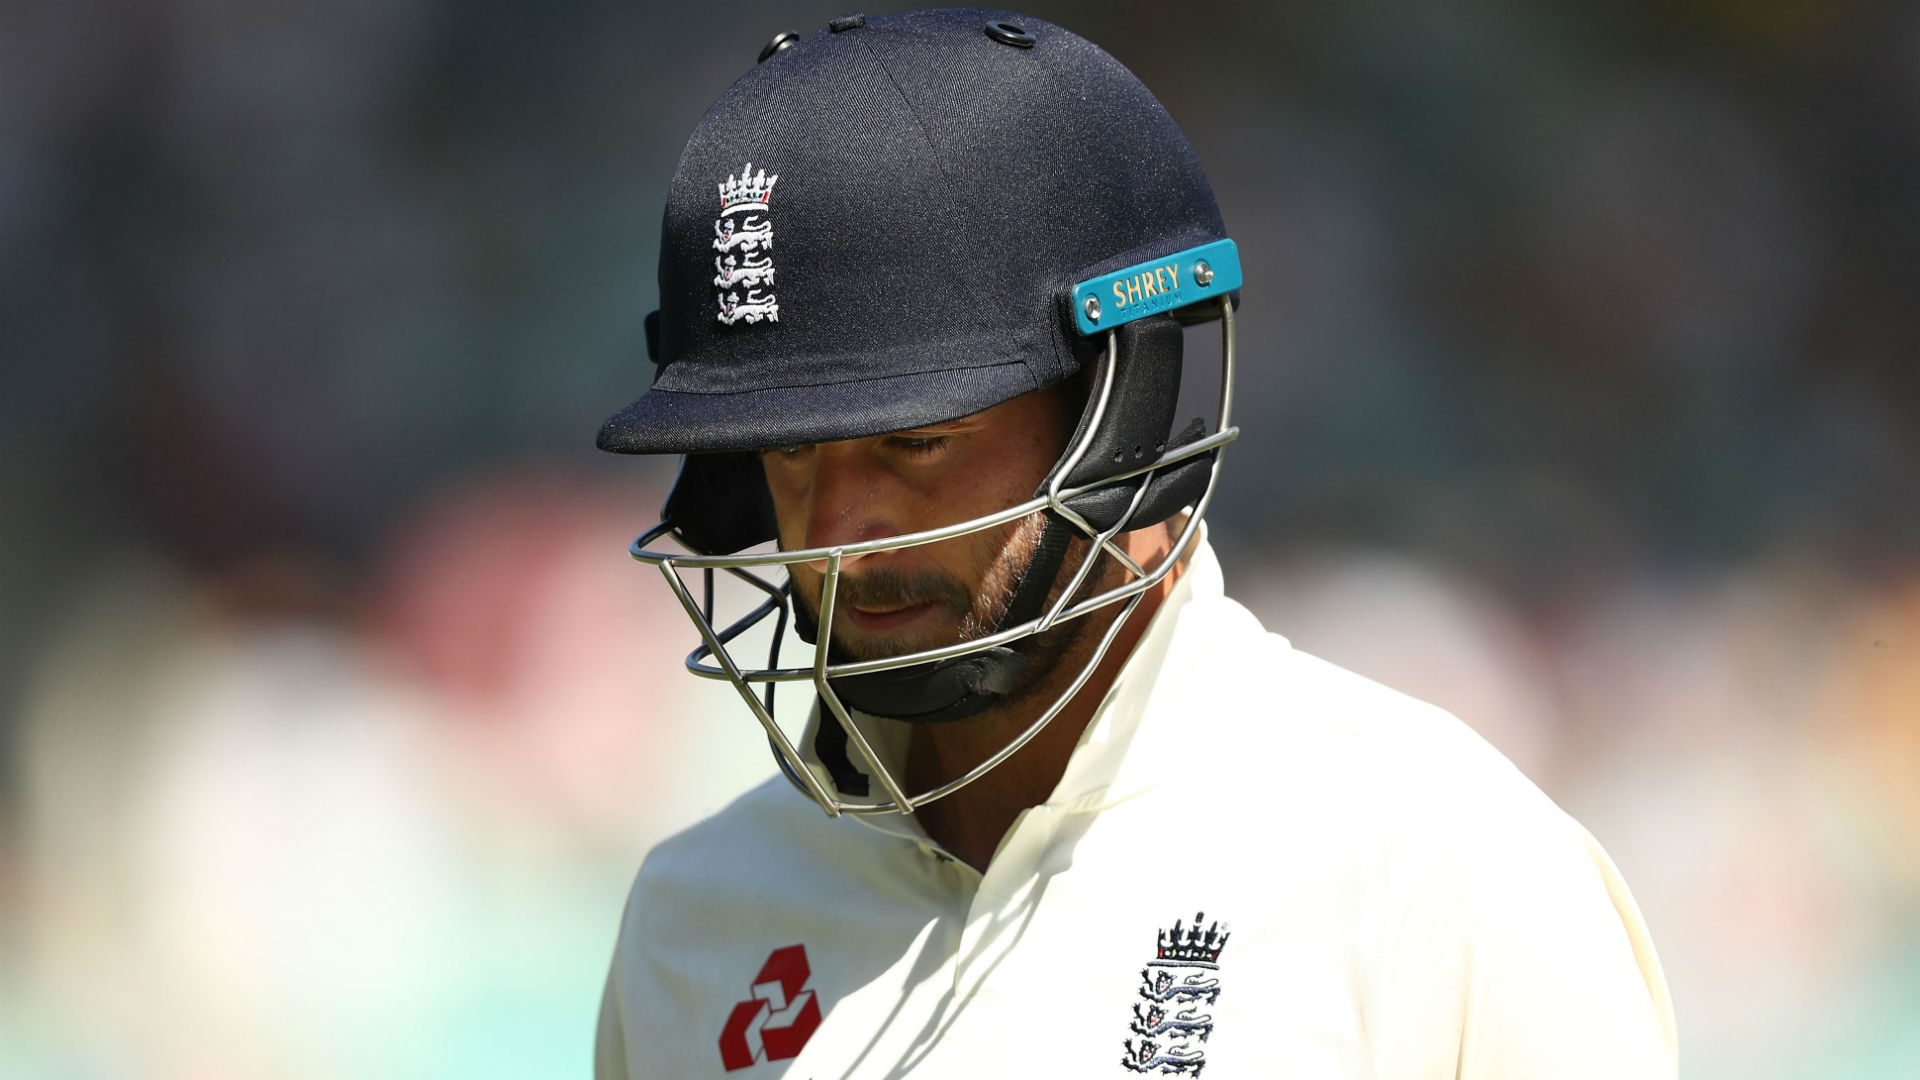 England are set to name the same team again for the fifth Test against India, with Alastair Cook in line for his final appearance.